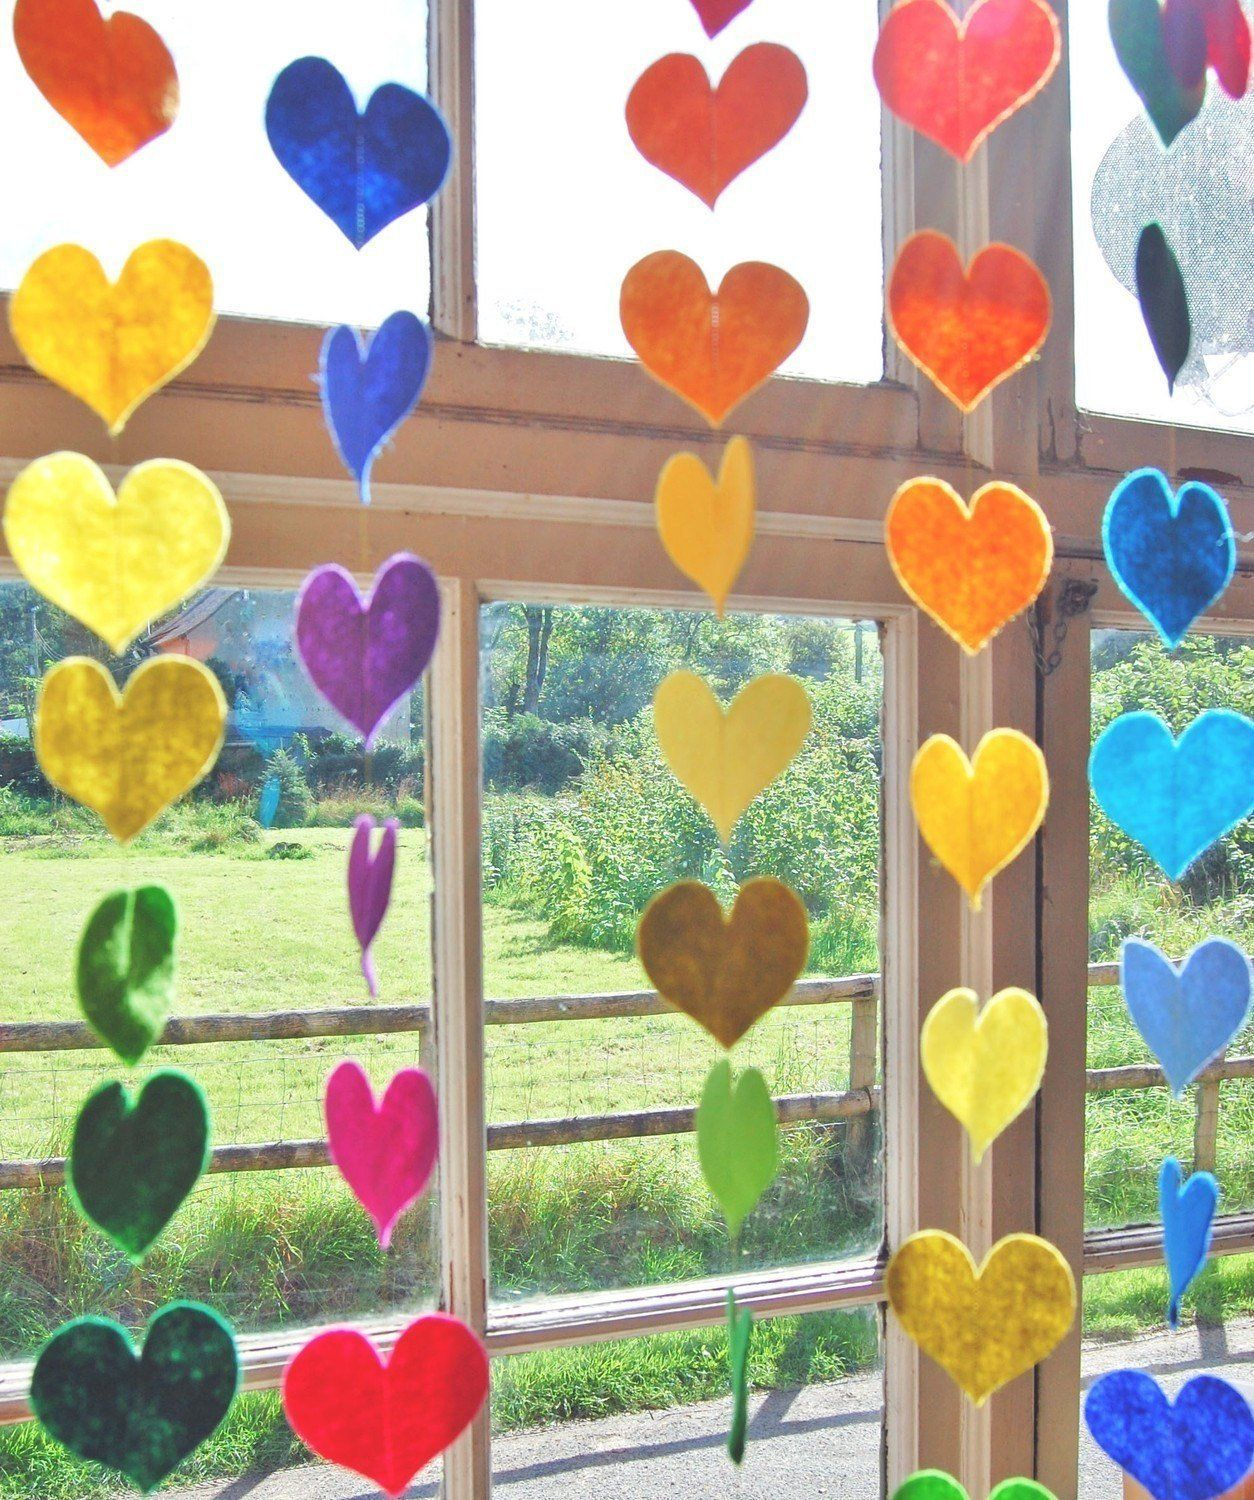 Hanging Rainbow Hearts A Colourful Decorative Garland Heart